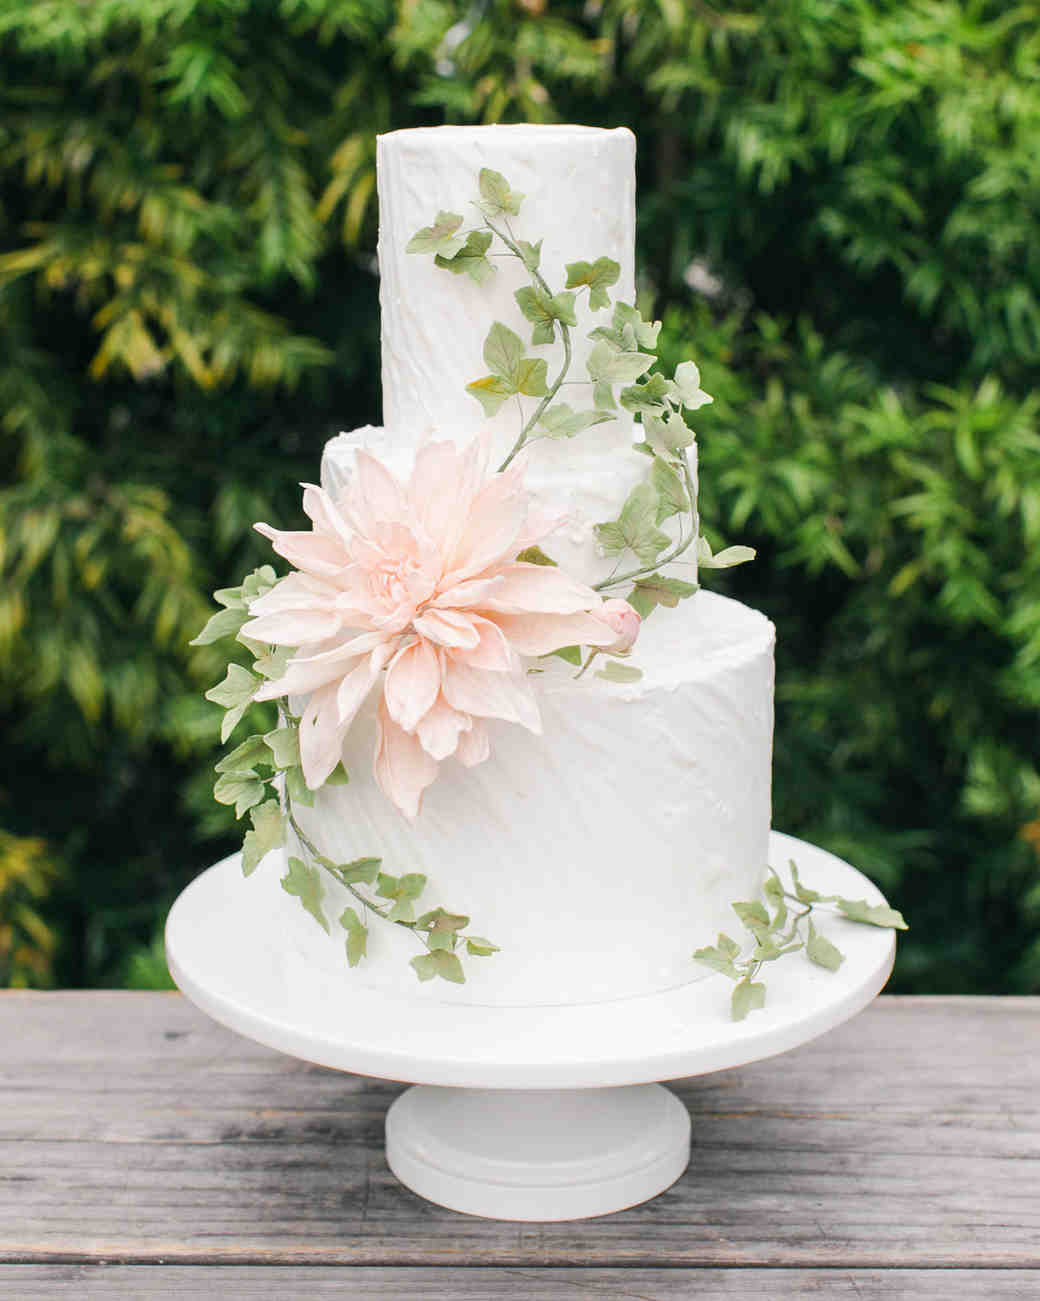 Sugar Free Wedding Cakes  Wedding Cakes with Sugar Flowers That Look Incredibly Real